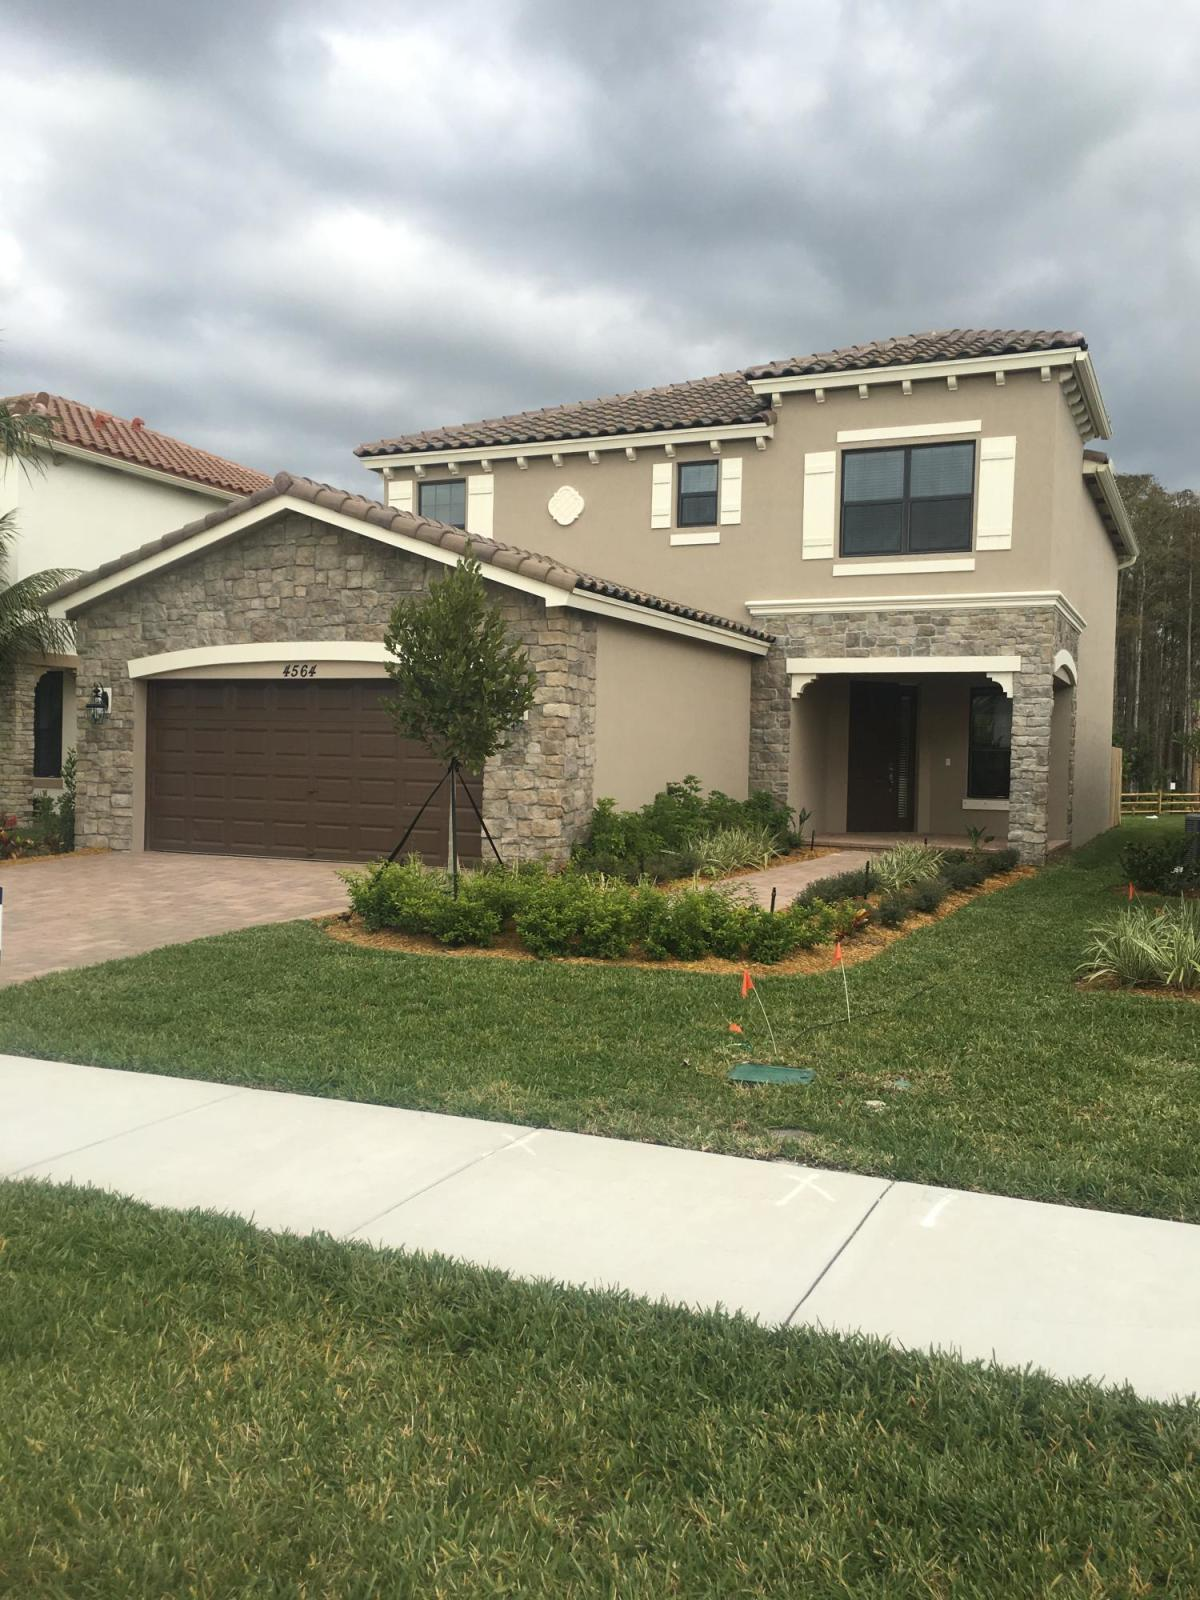 Beautiful large family home in most desireable Lake Worth.  Don't miss opportunity to own this newly built 5 bedroom 3 bath open floor plan home. Separate living room, family room, granite countertops, stainless steel appliances, impact windows, oversized master bedroom.  Huge backyard, 2 car garage. Hurry before it's gone.